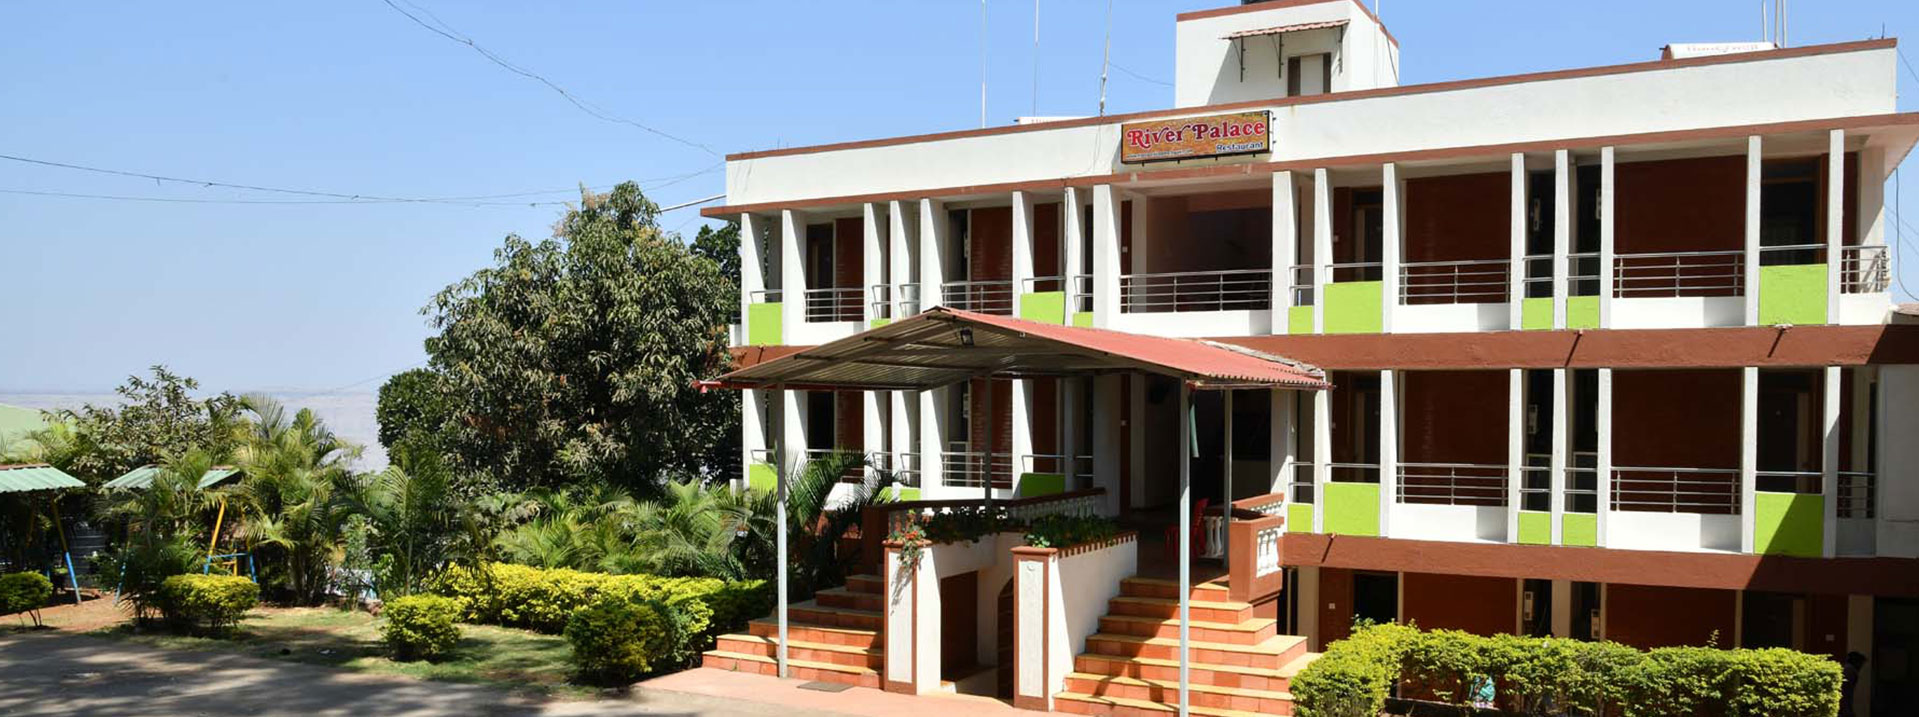 The River Palace / Best Hotels In Mahabaleshwar